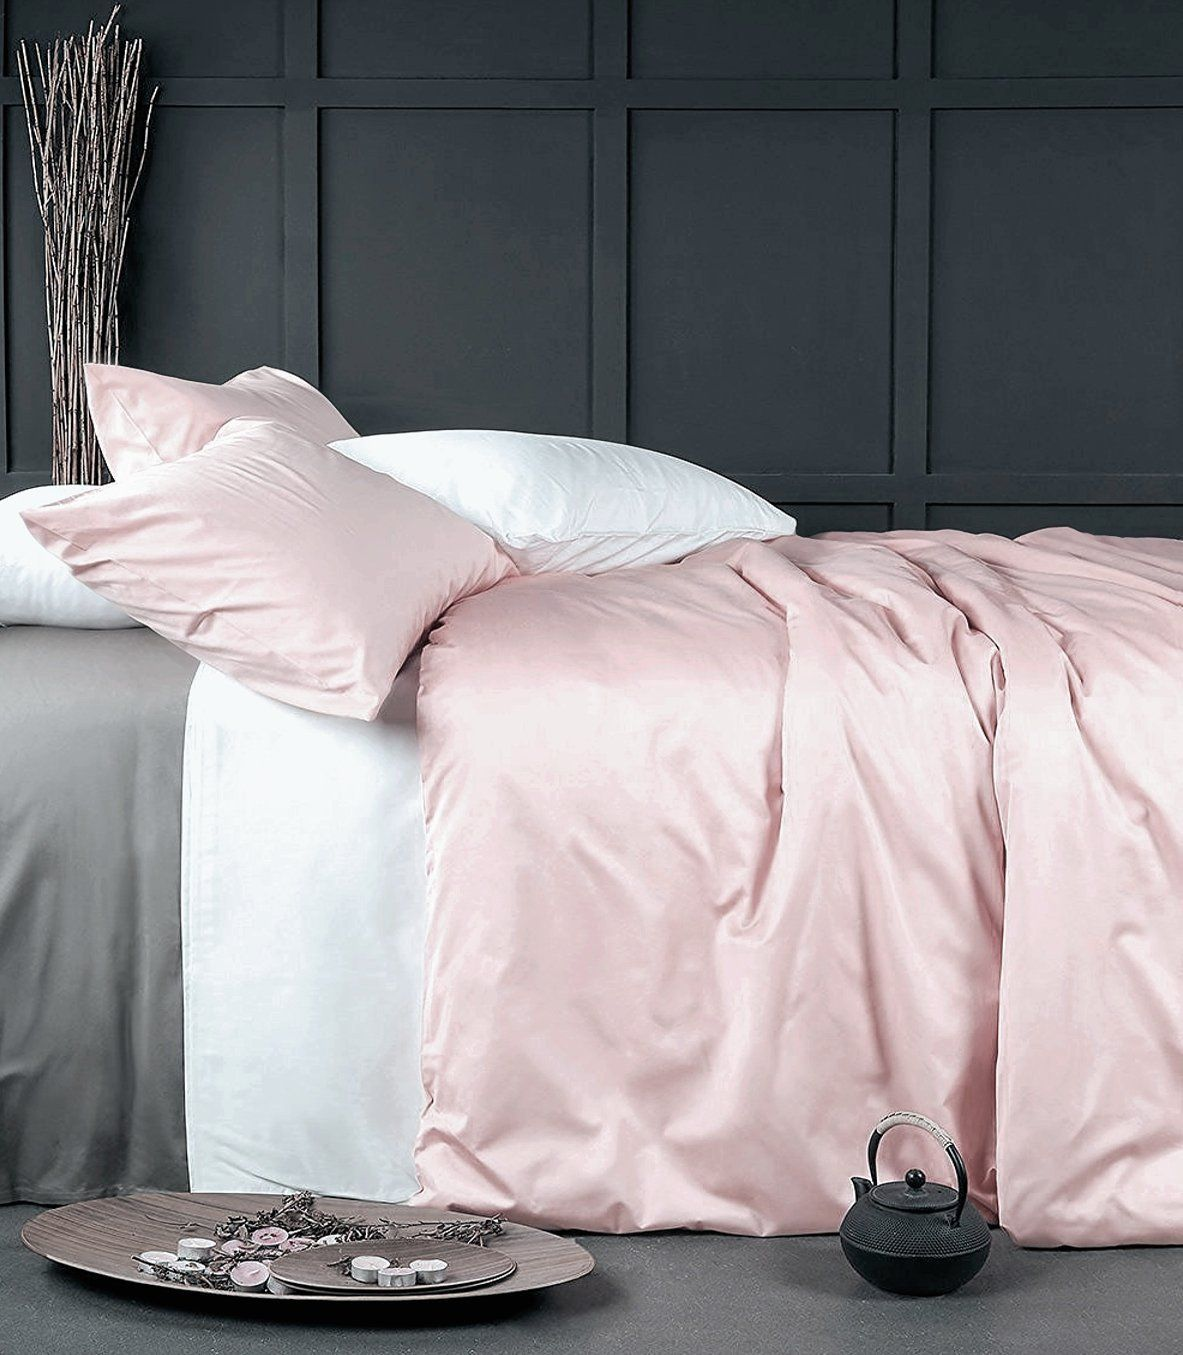 Rose Gold Duvet Cover Luxury Bedding Set High Thread Count Egyptian Cotton Sa Silky Soft Blush Pale Pink Solid Colored Queen